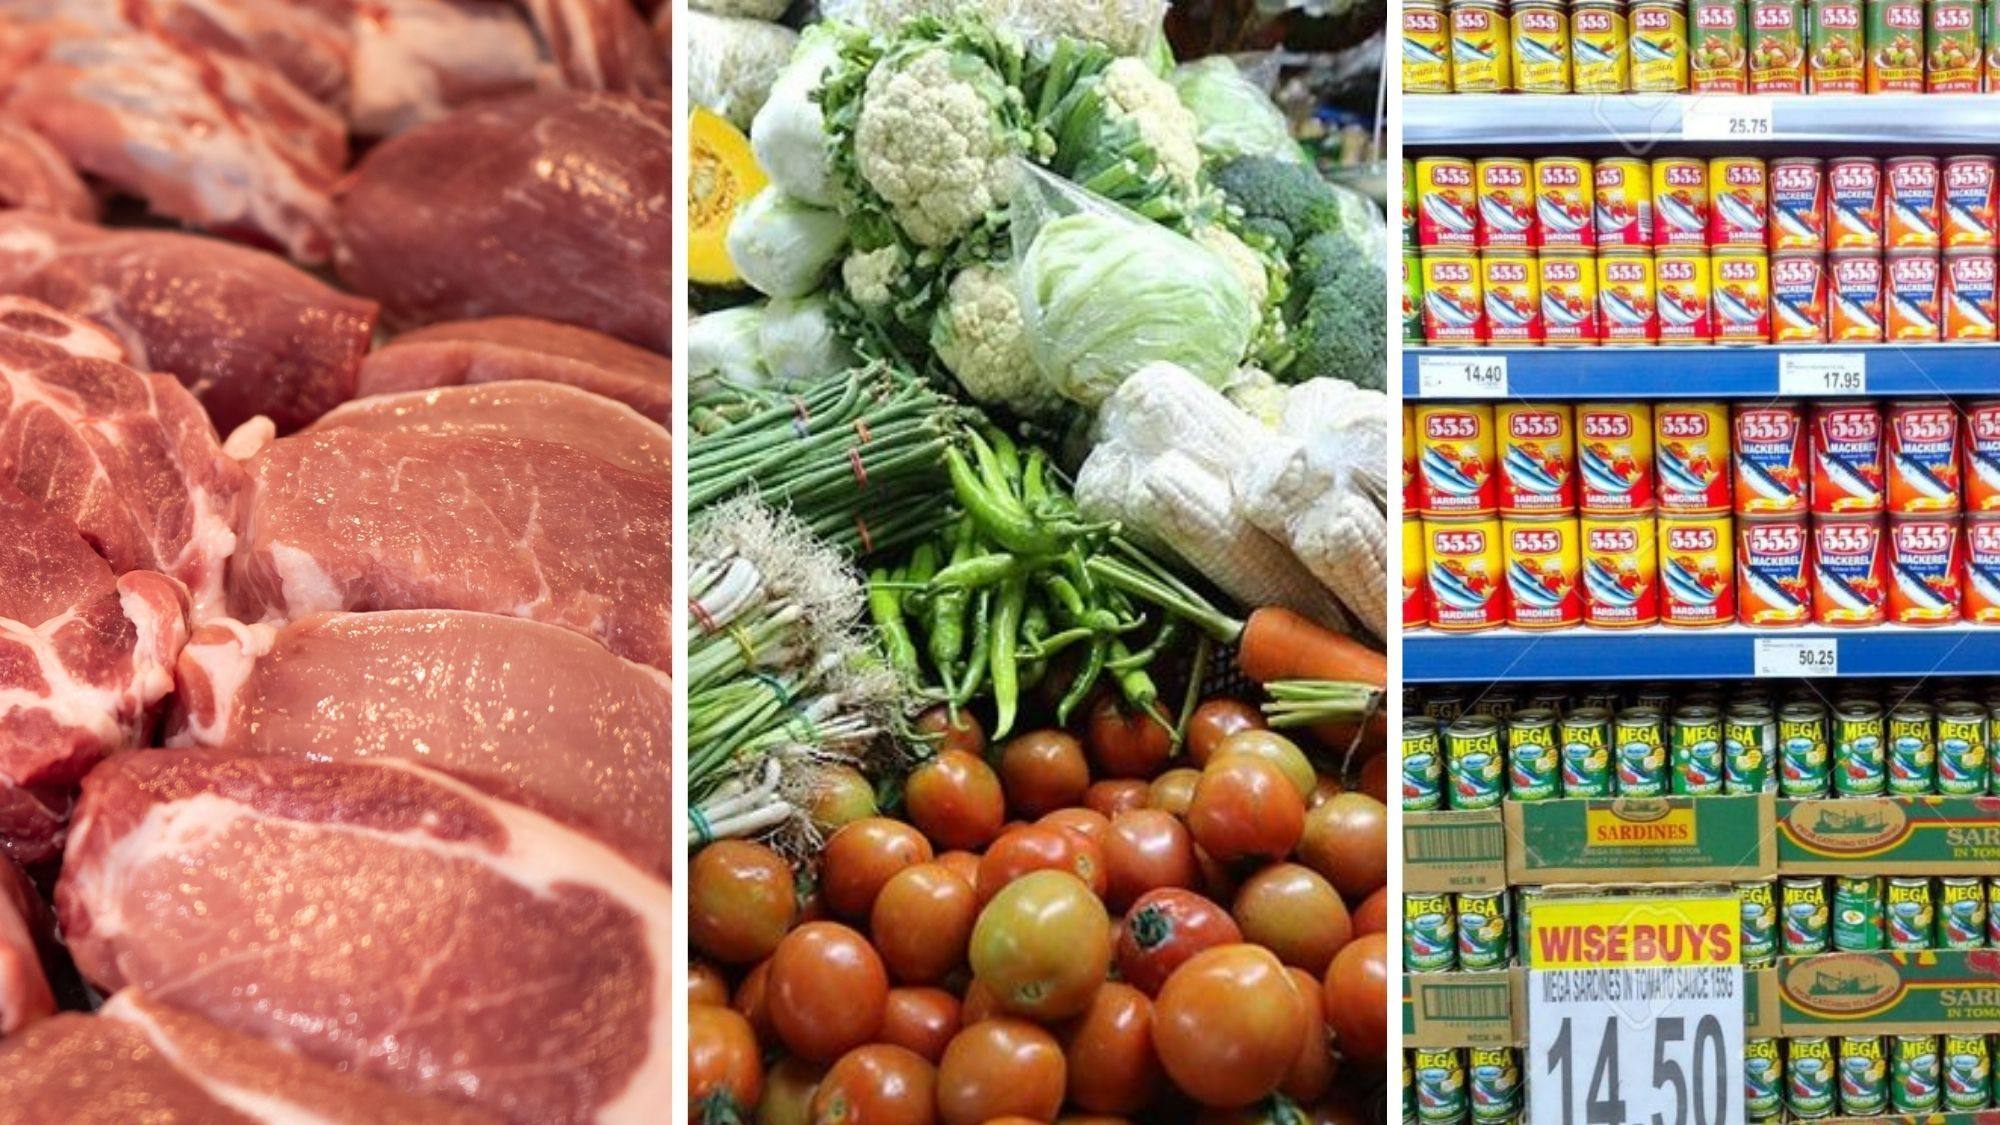 Inflation rises to 4.9% in August